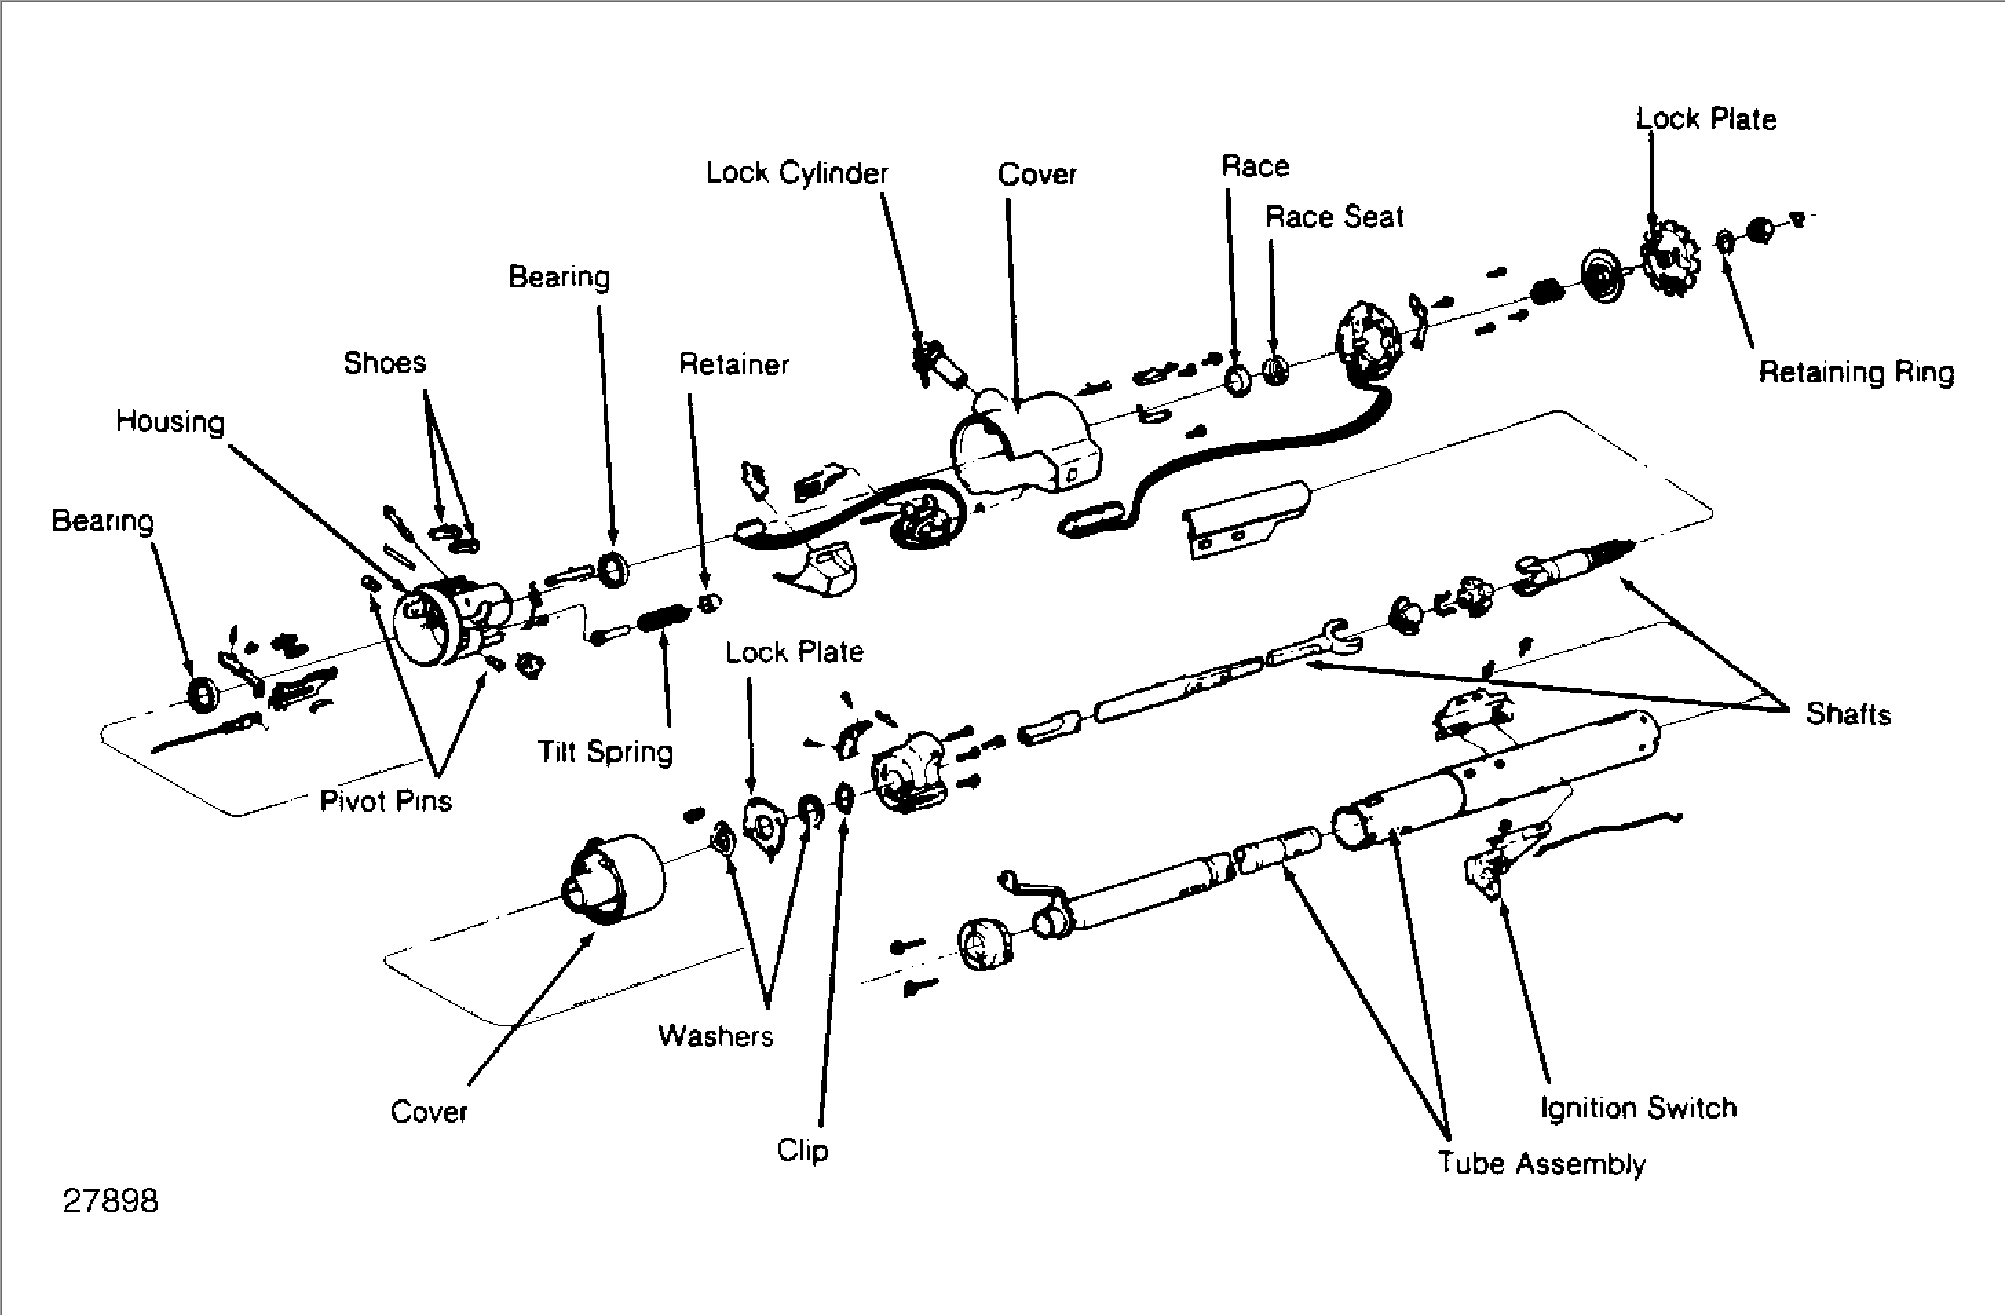 1990 oldsmobile 88 royal steering column diagram please oldsmobile steering diagrams oldsmobile steering column wiring diagram #1